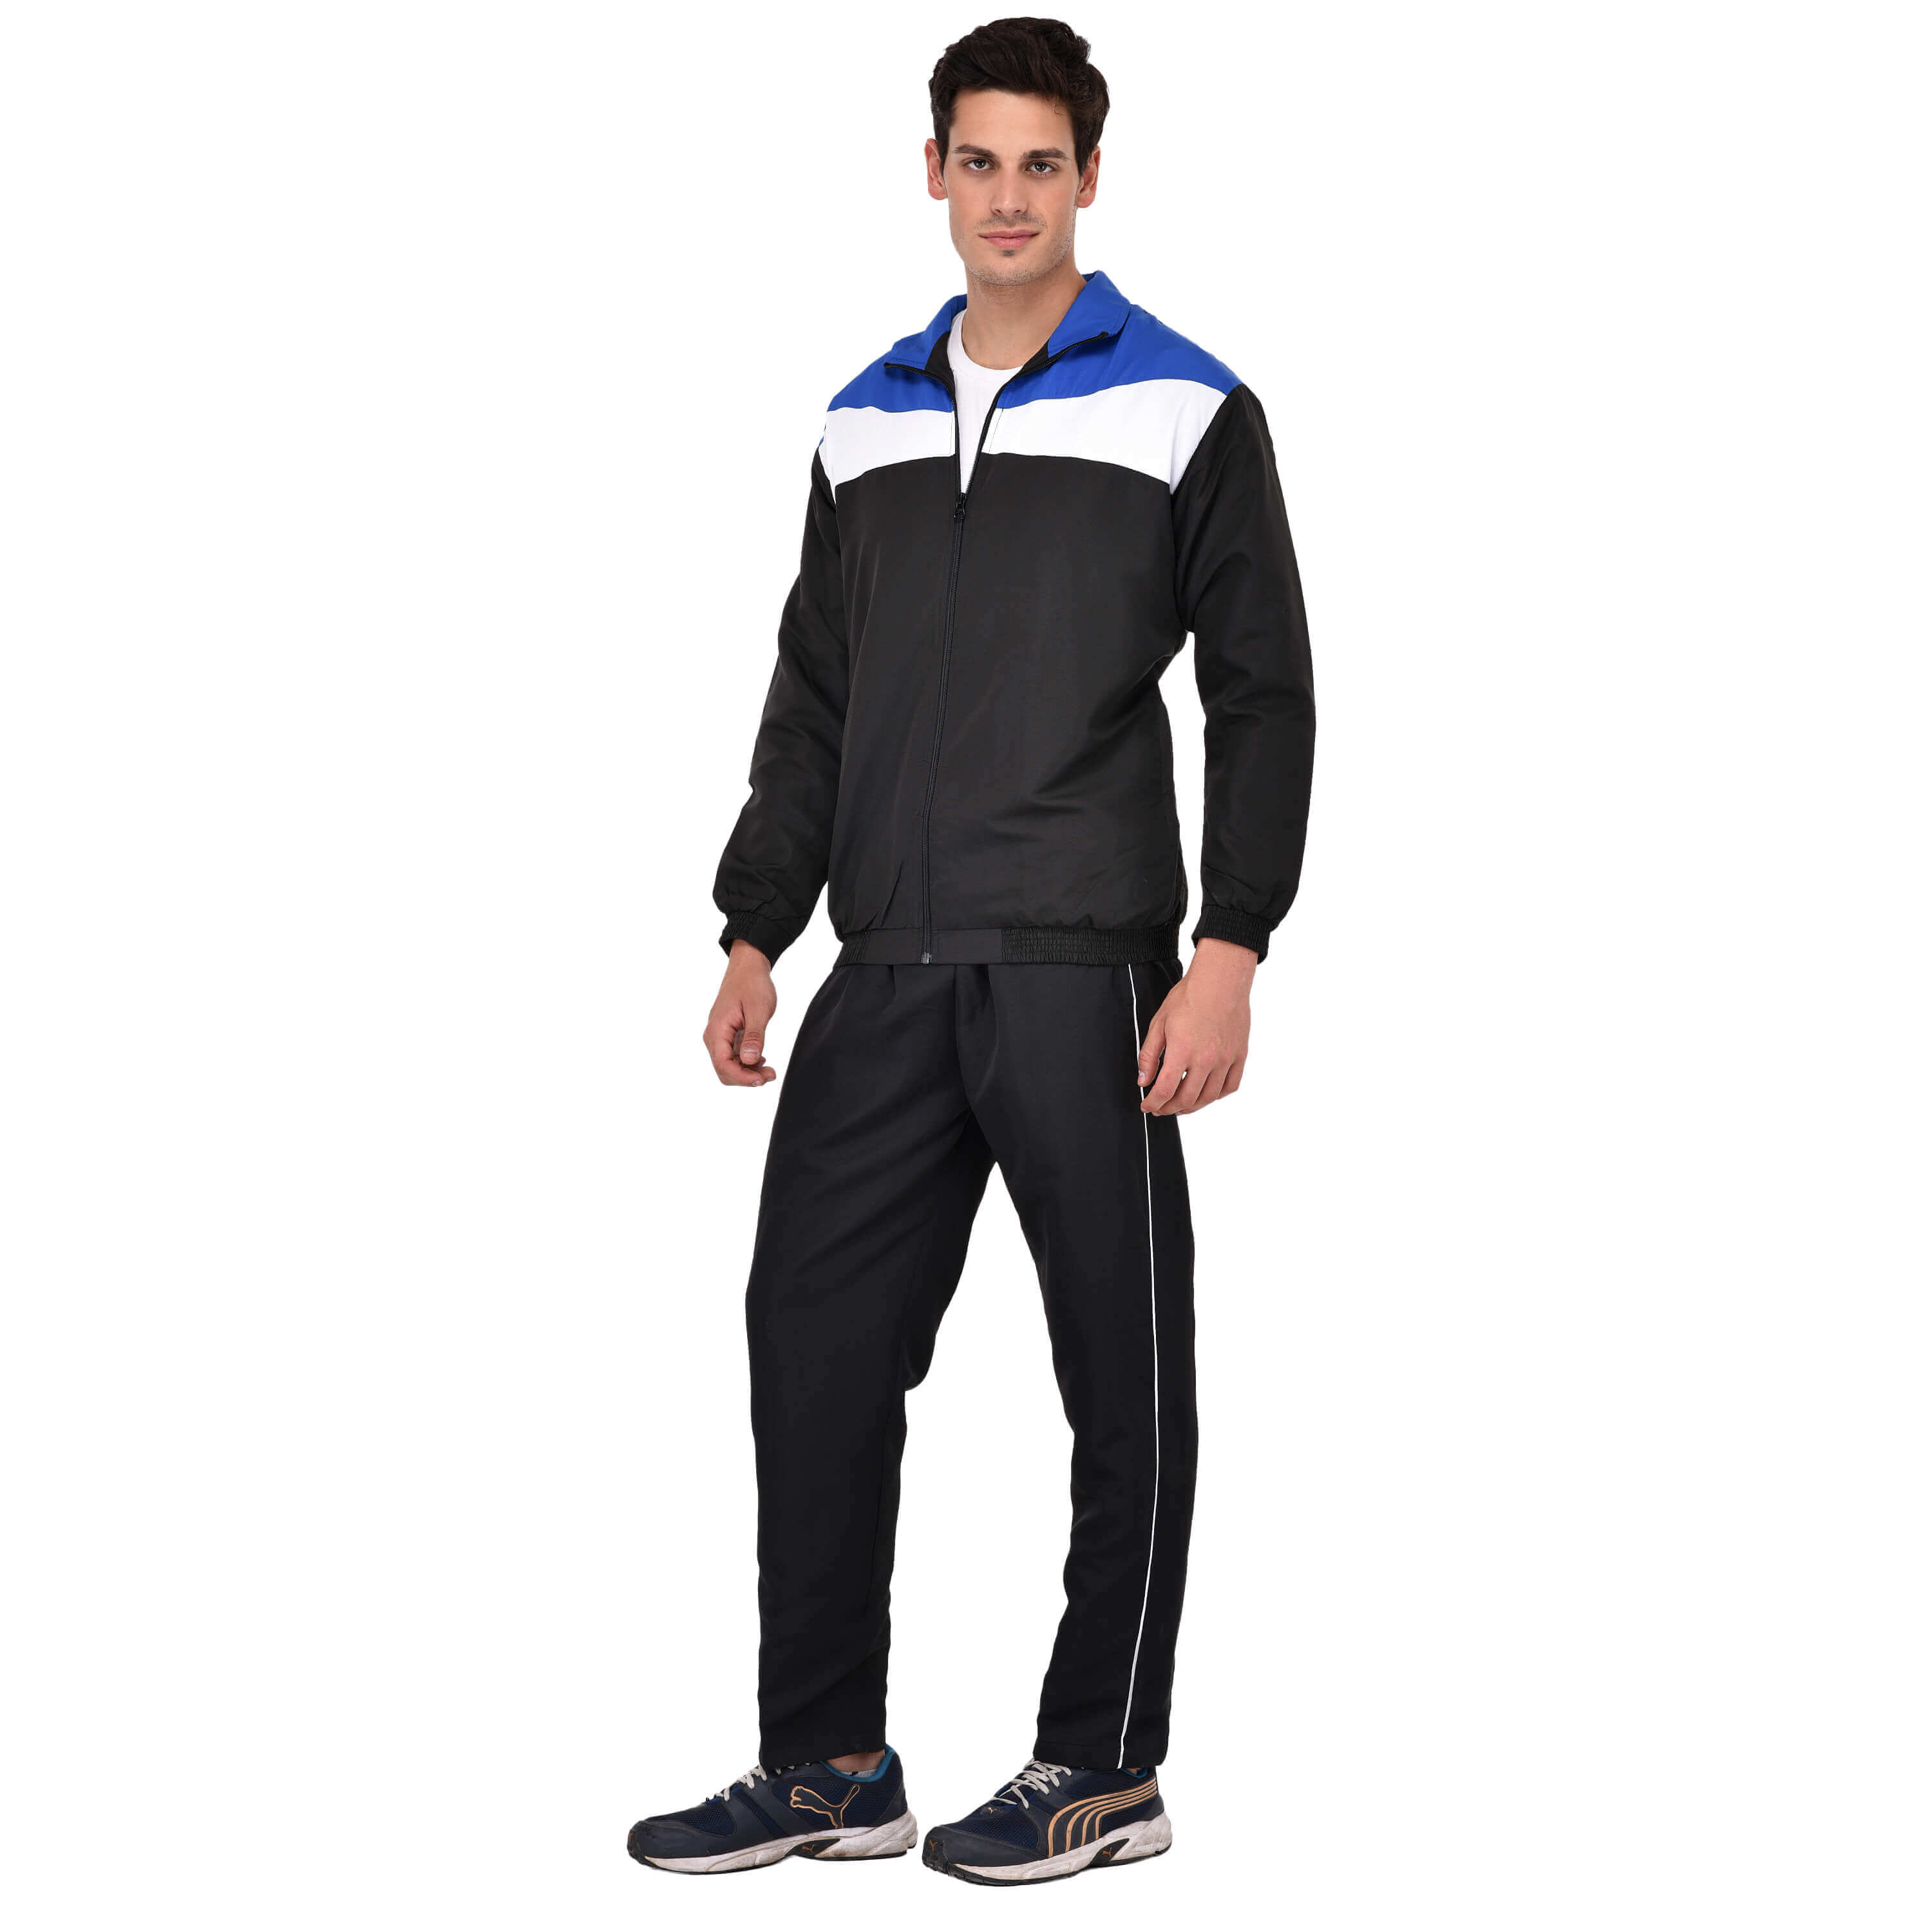 Tracksuit Set Manufacturers in Raipur